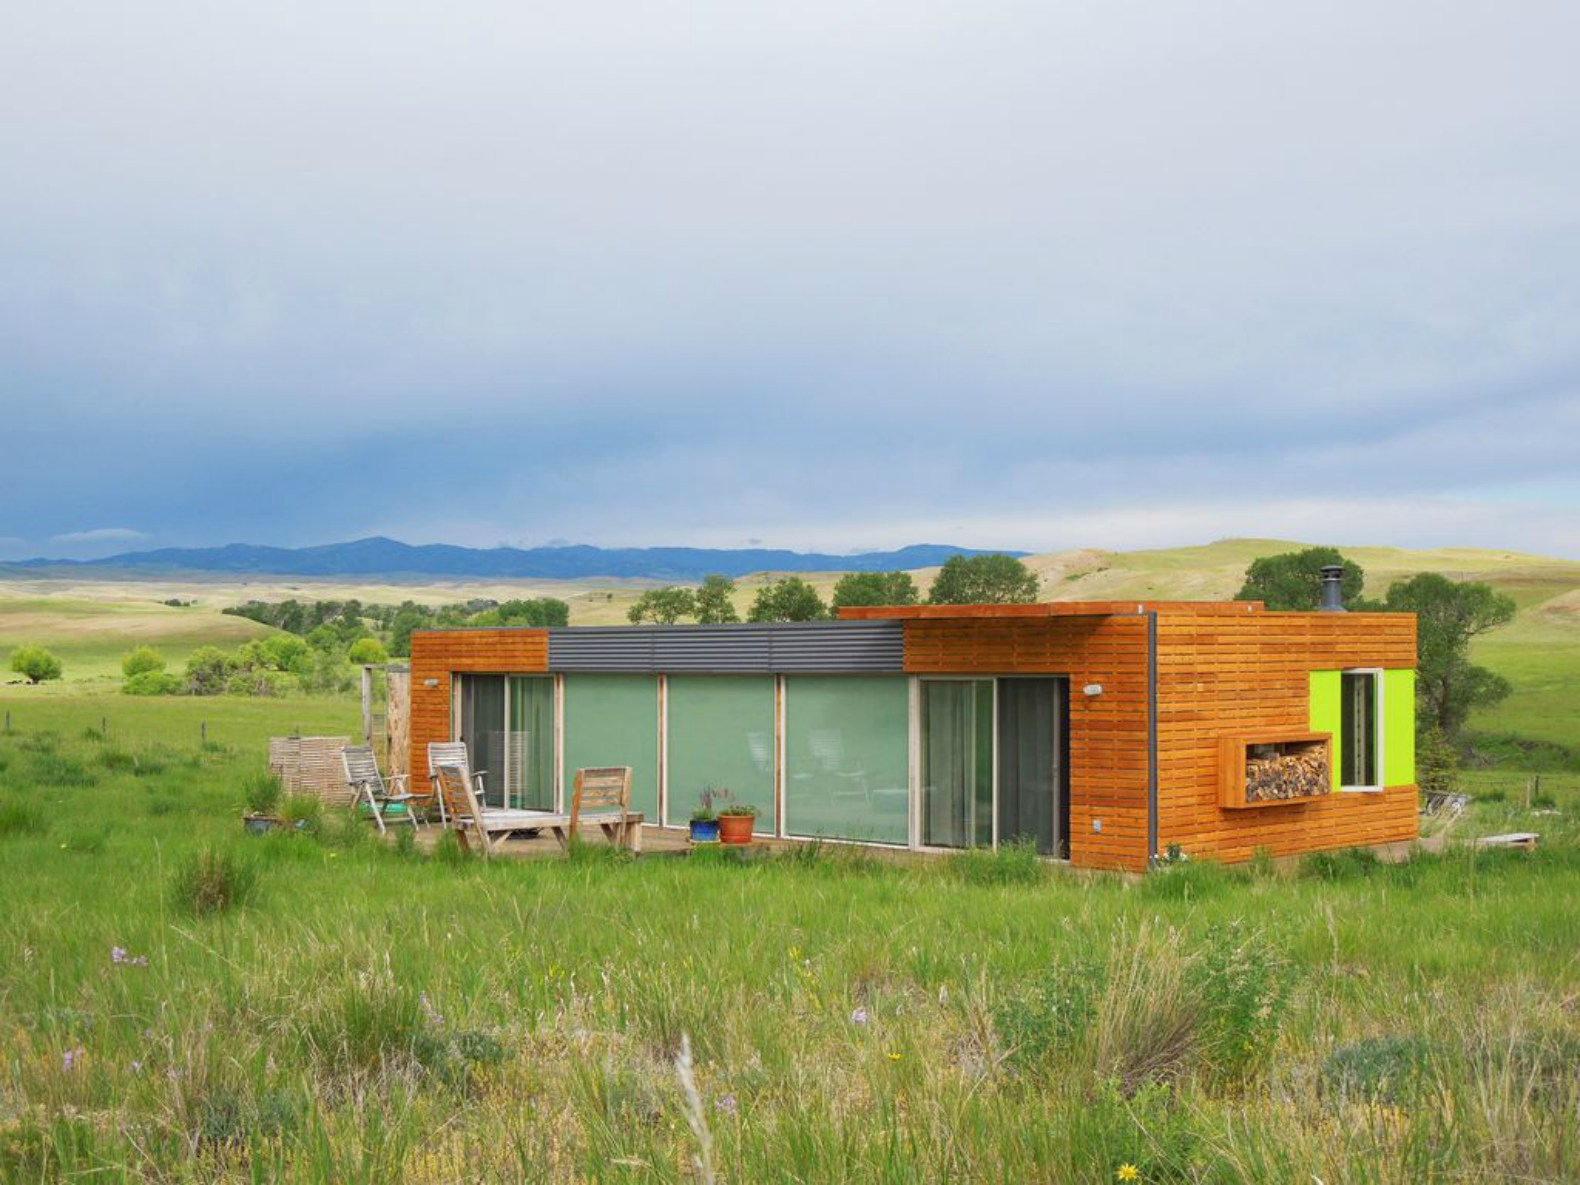 Stunning shipping container home can be yours for $125k